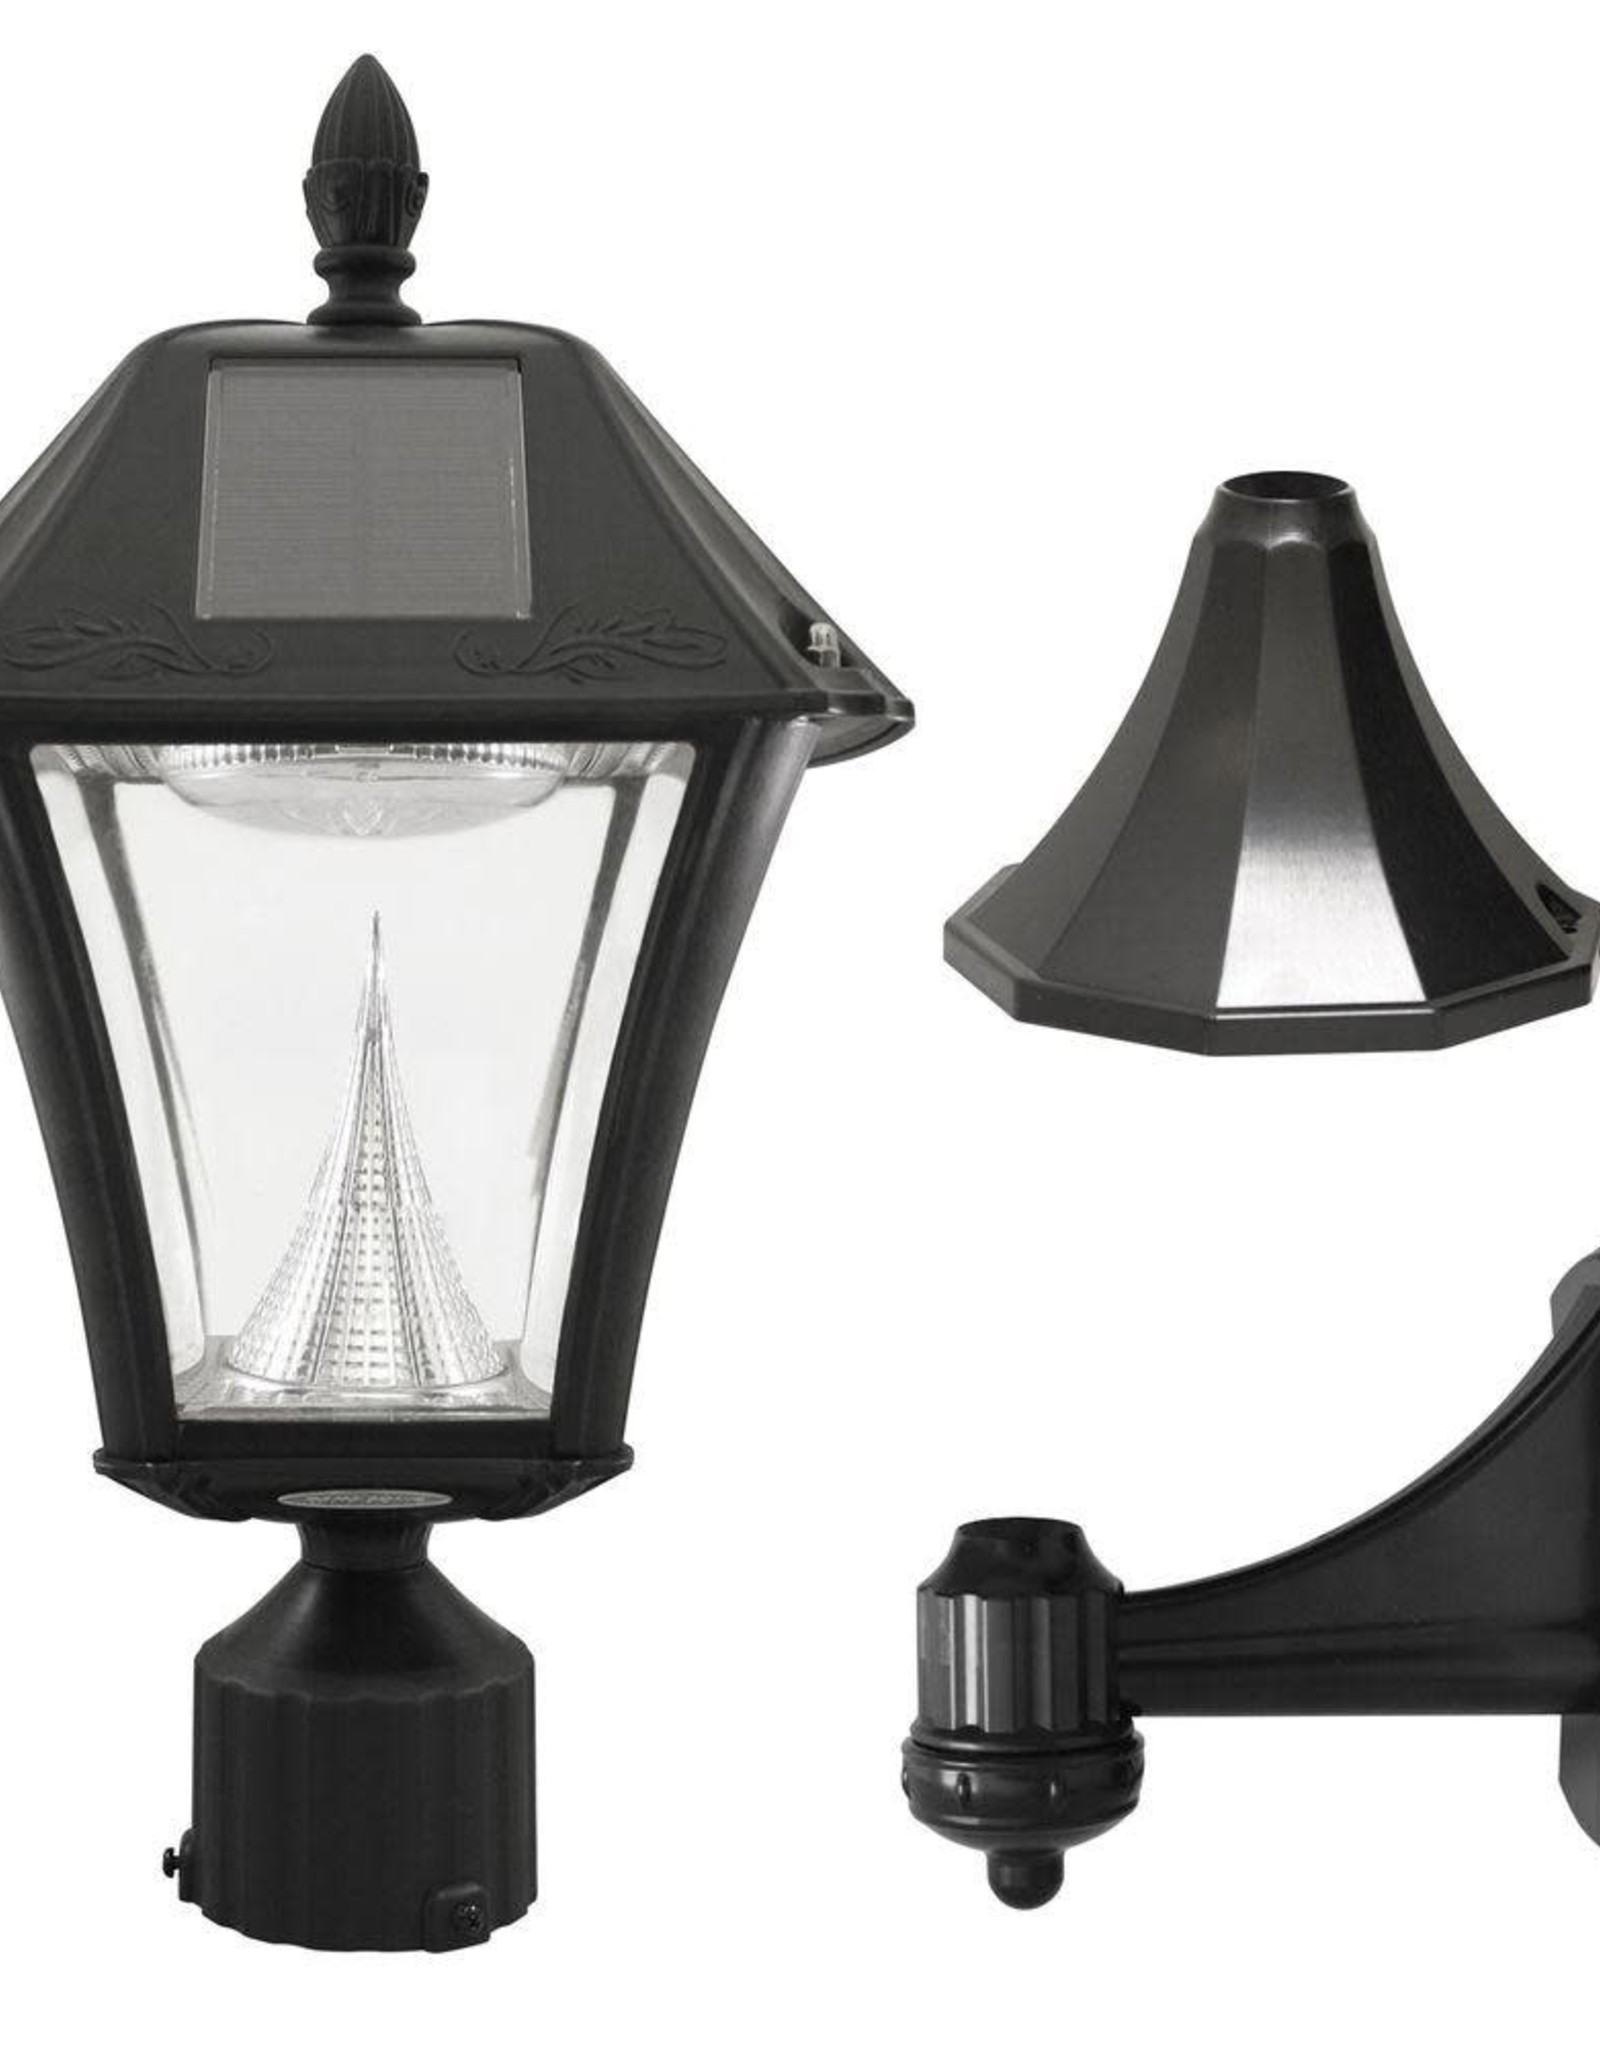 Gama Sonic Baytown II Black Resin Outdoor Integrated LED Solar Post/Wall Light with Bright-White LEDs